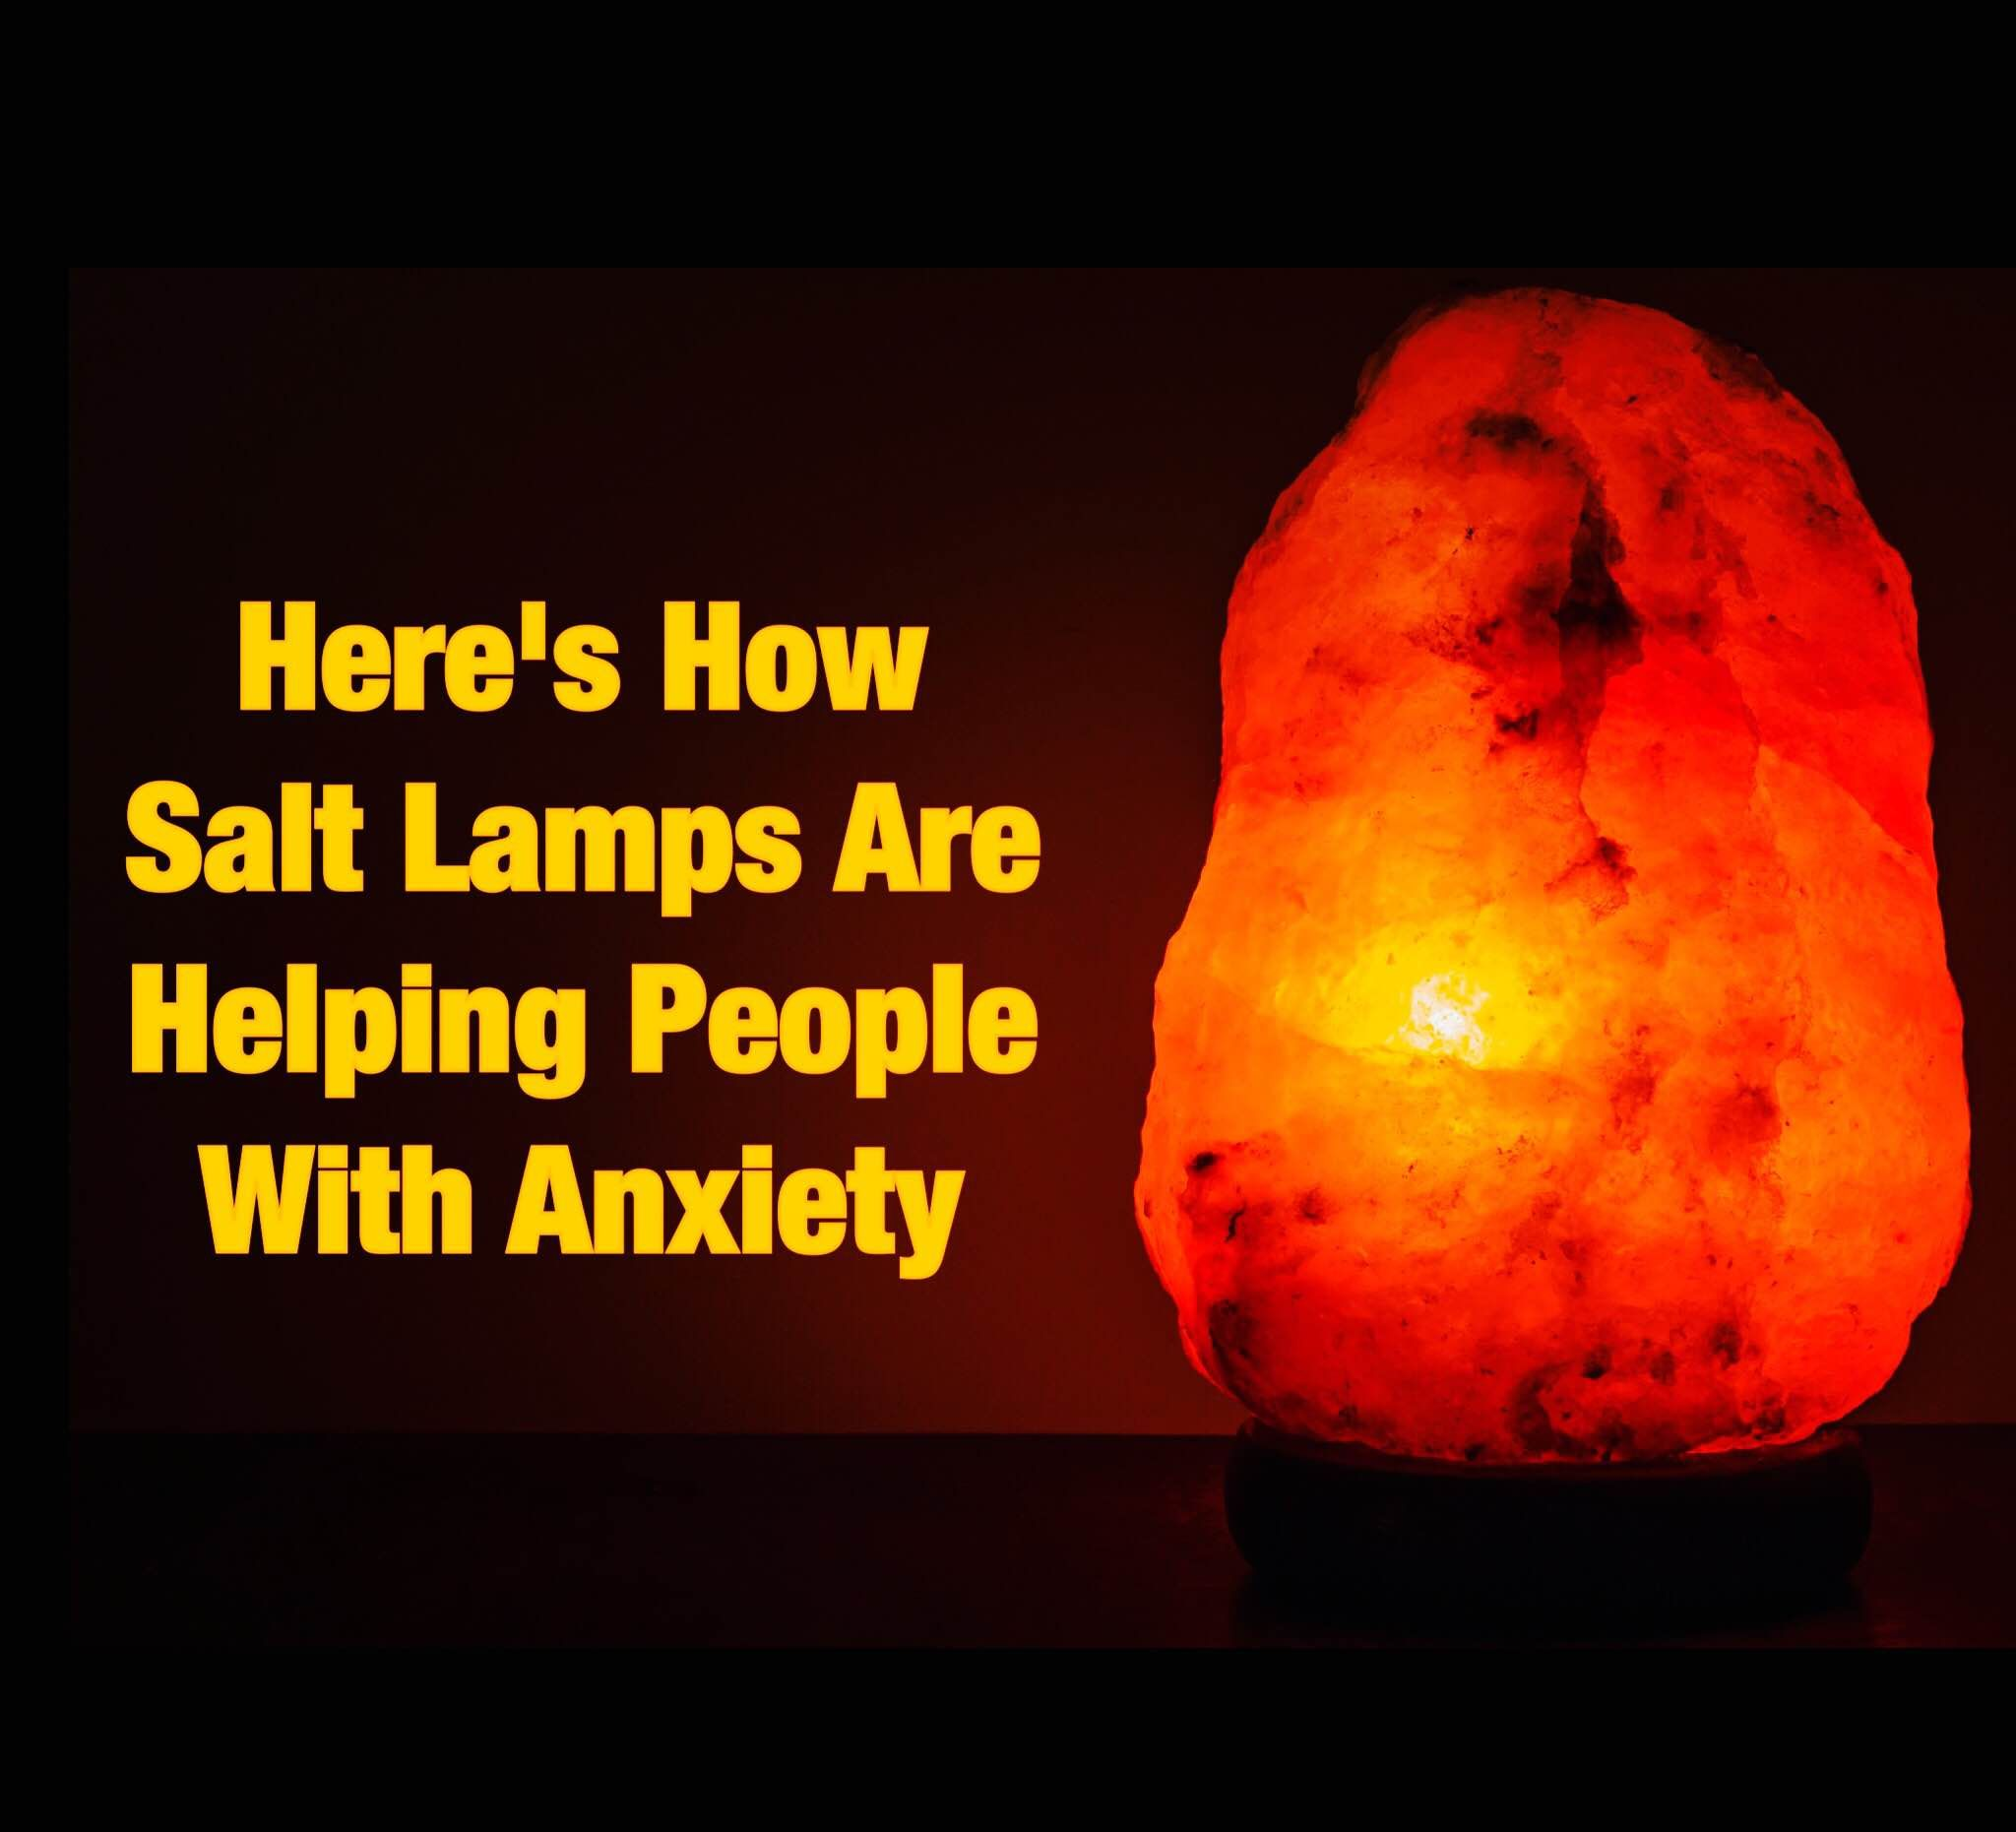 Salt Lamp Anxiety Best Here's How Salt Lamps Are Helping People With Anxiety  Cure Design Inspiration